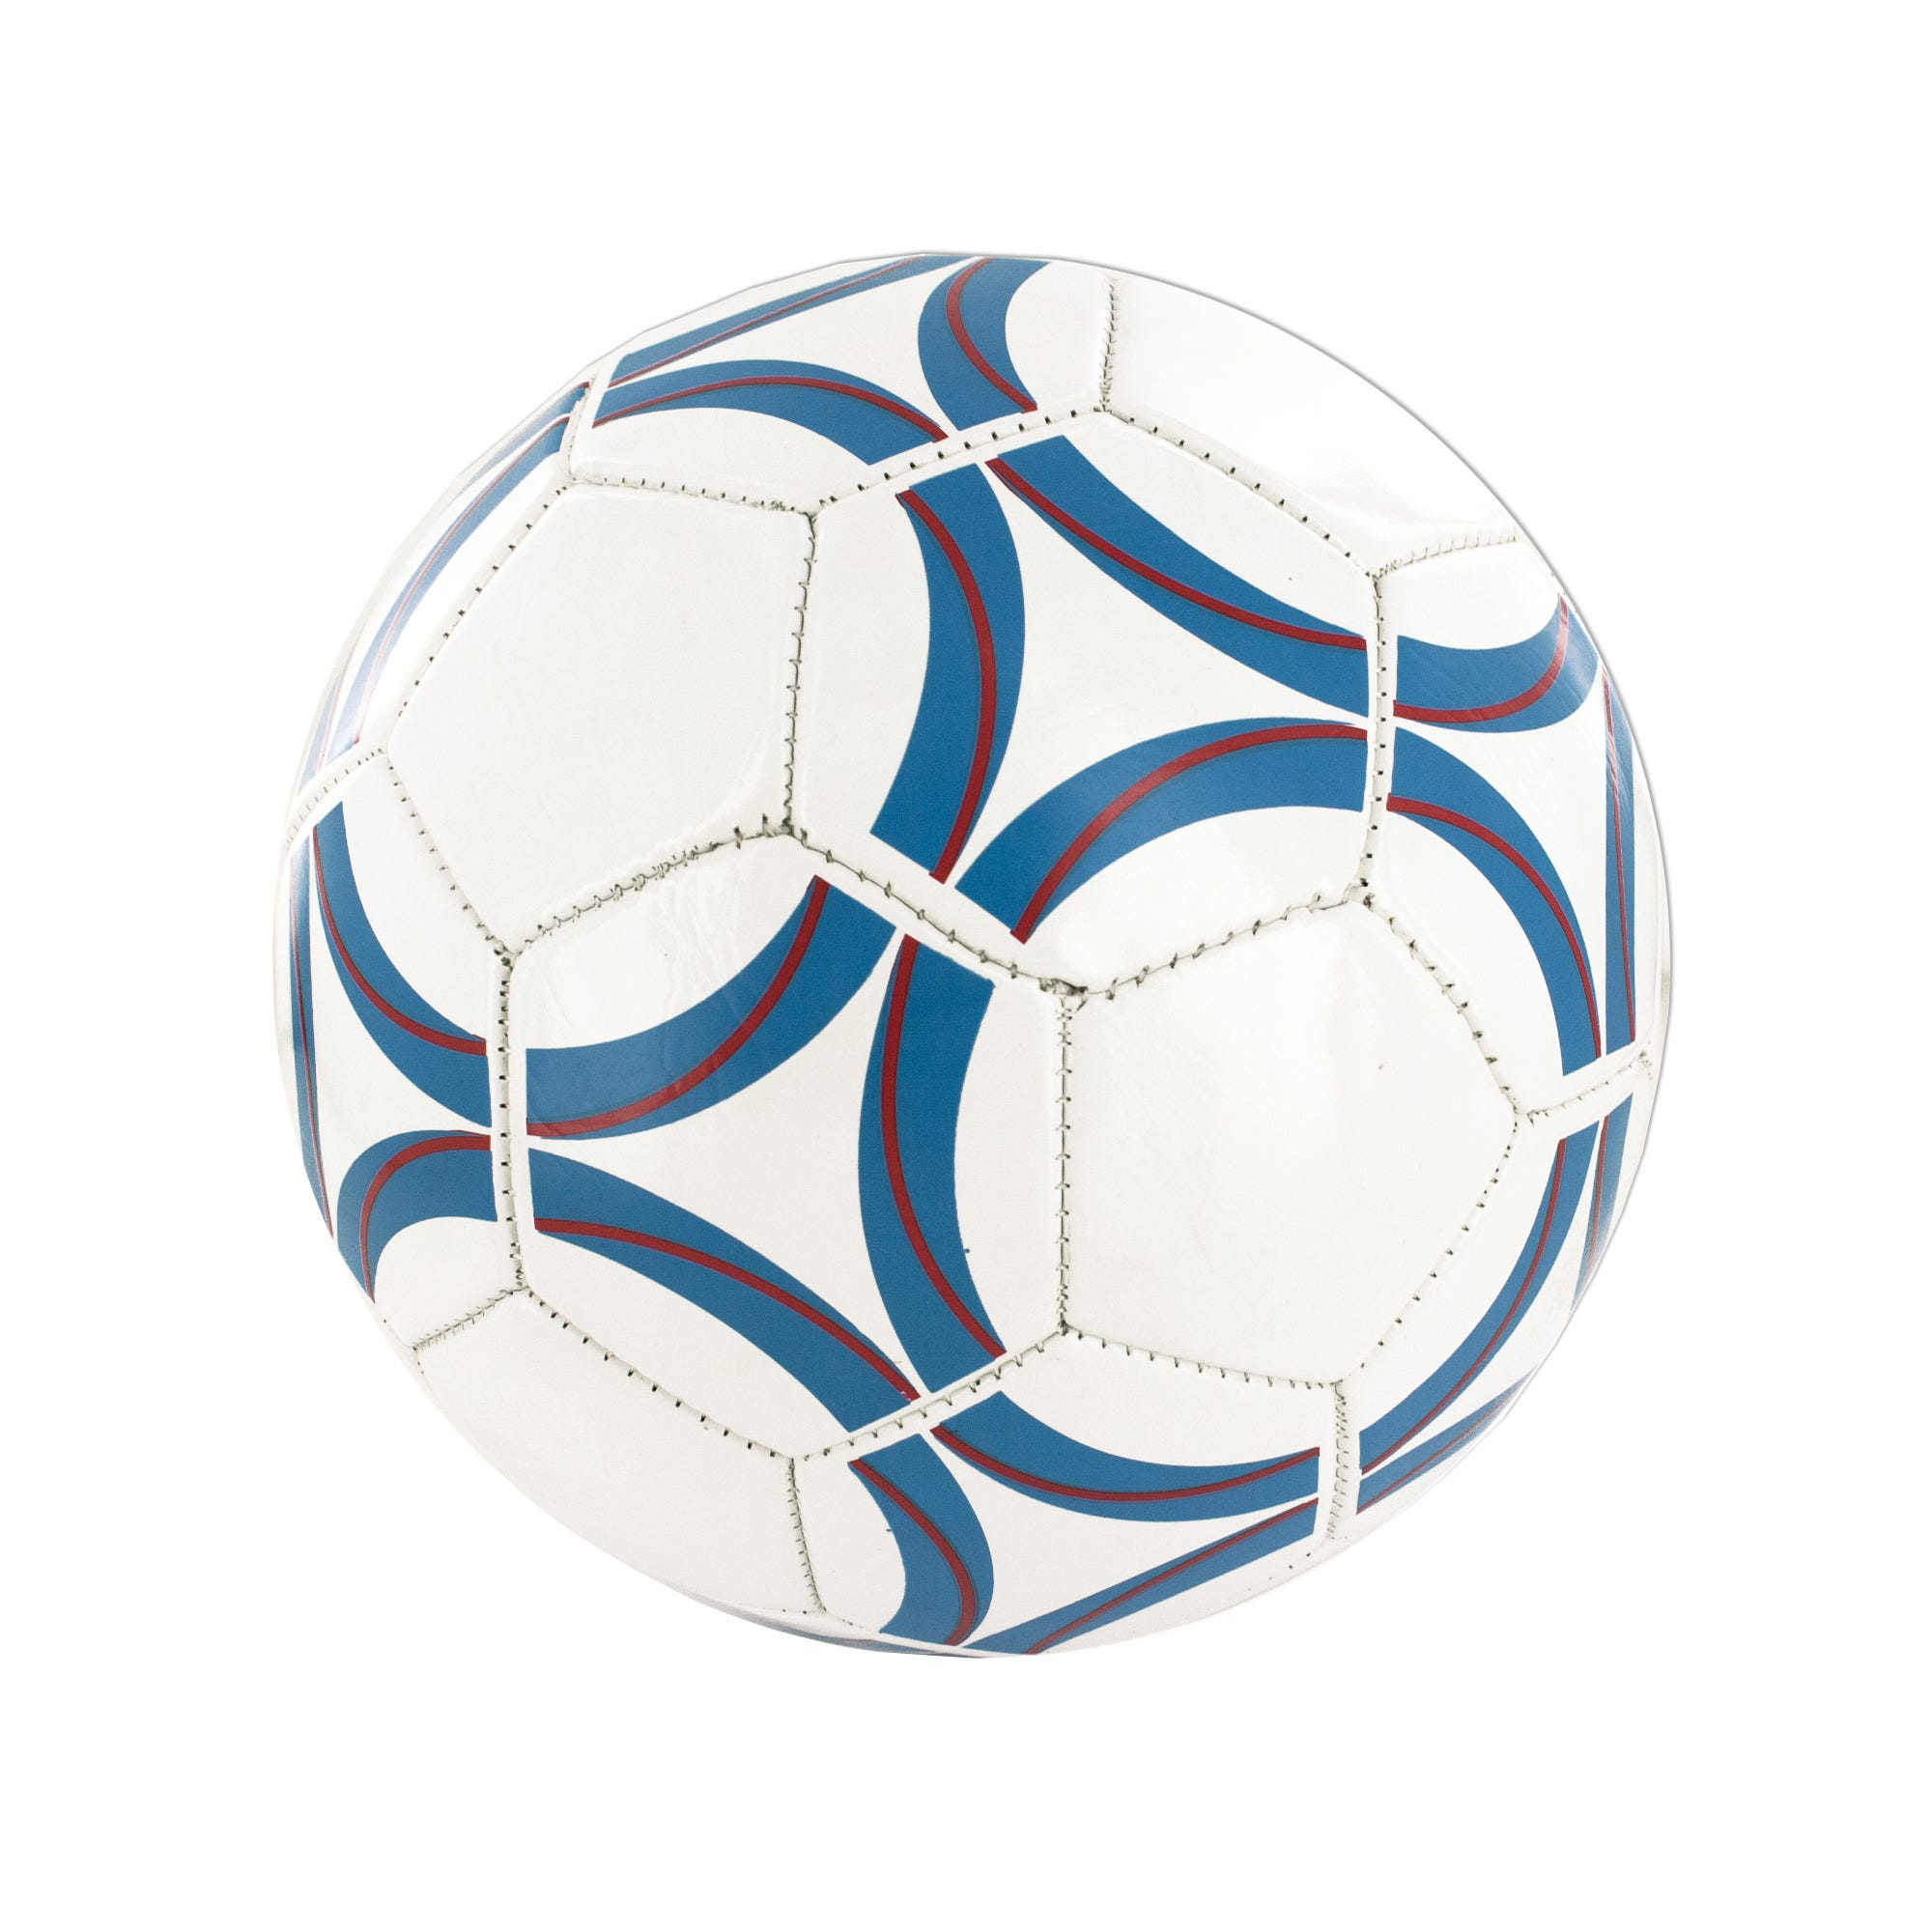 Simulated Leather Size 5 Soccer Ball- Qty 4